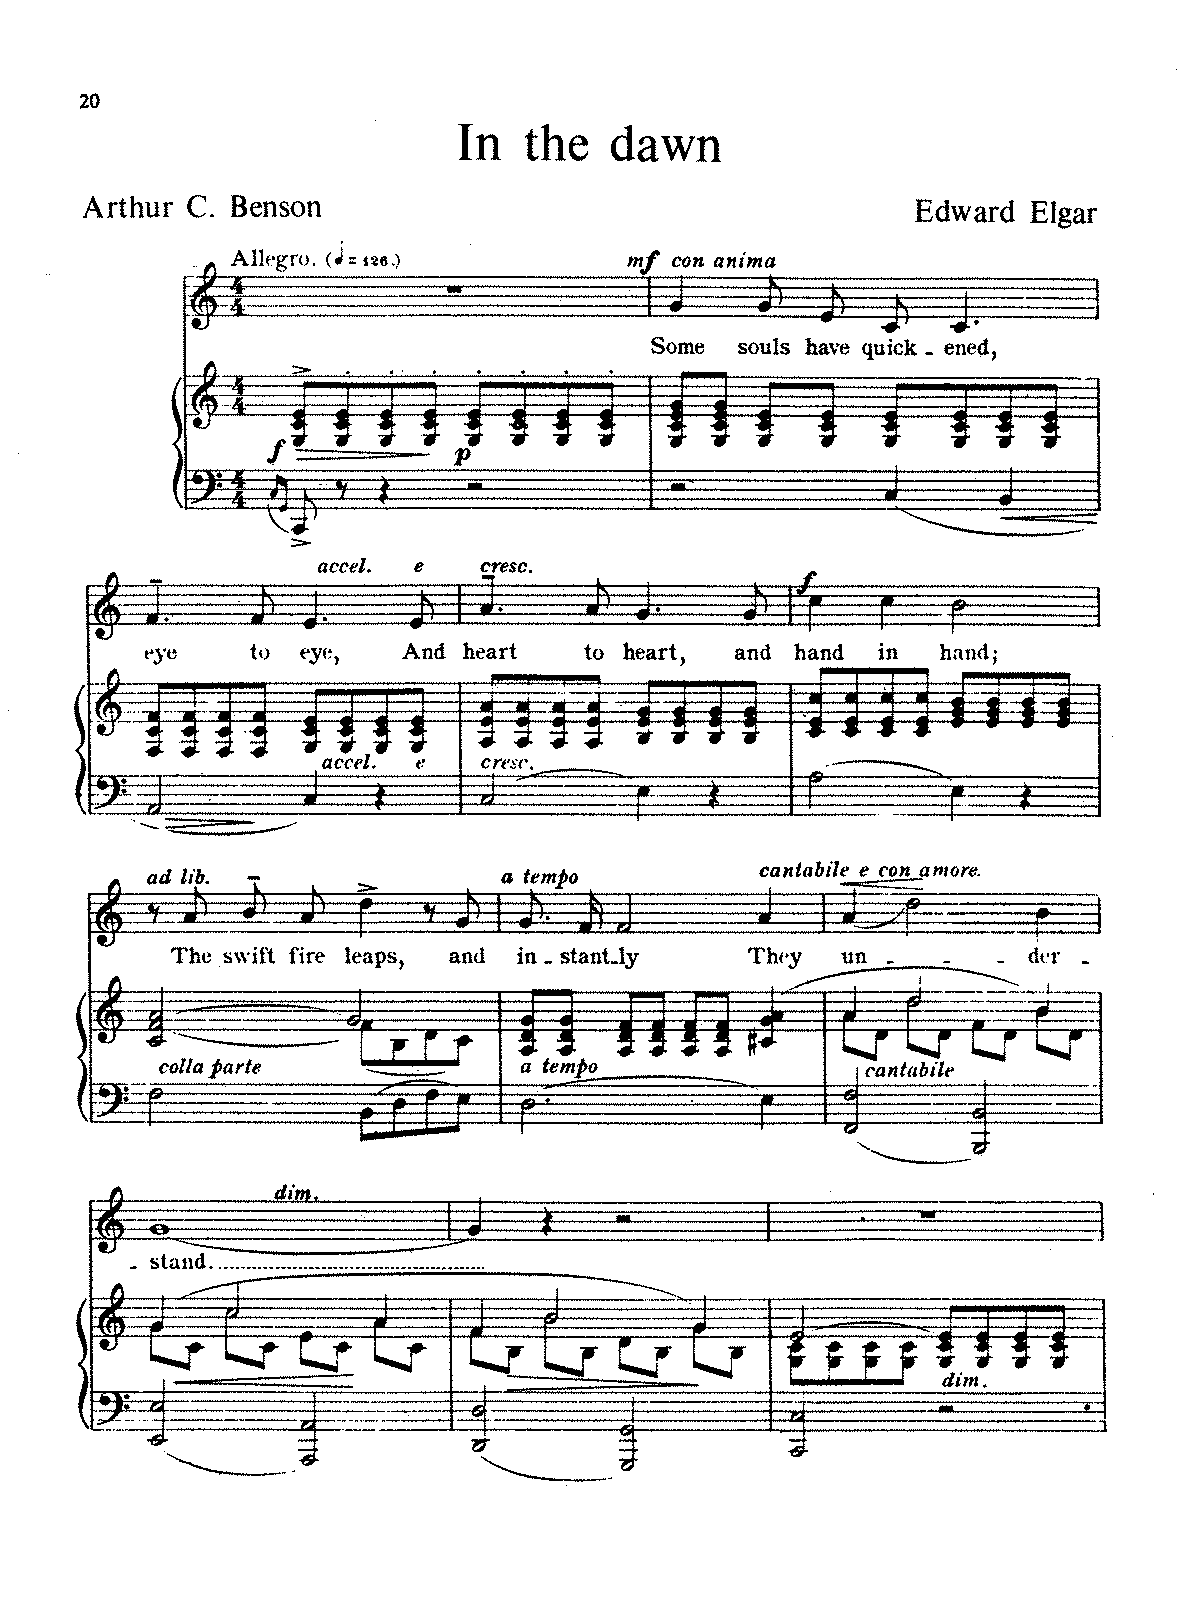 PMLP118009-Elgar - In the dawn (voice and piano).pdf